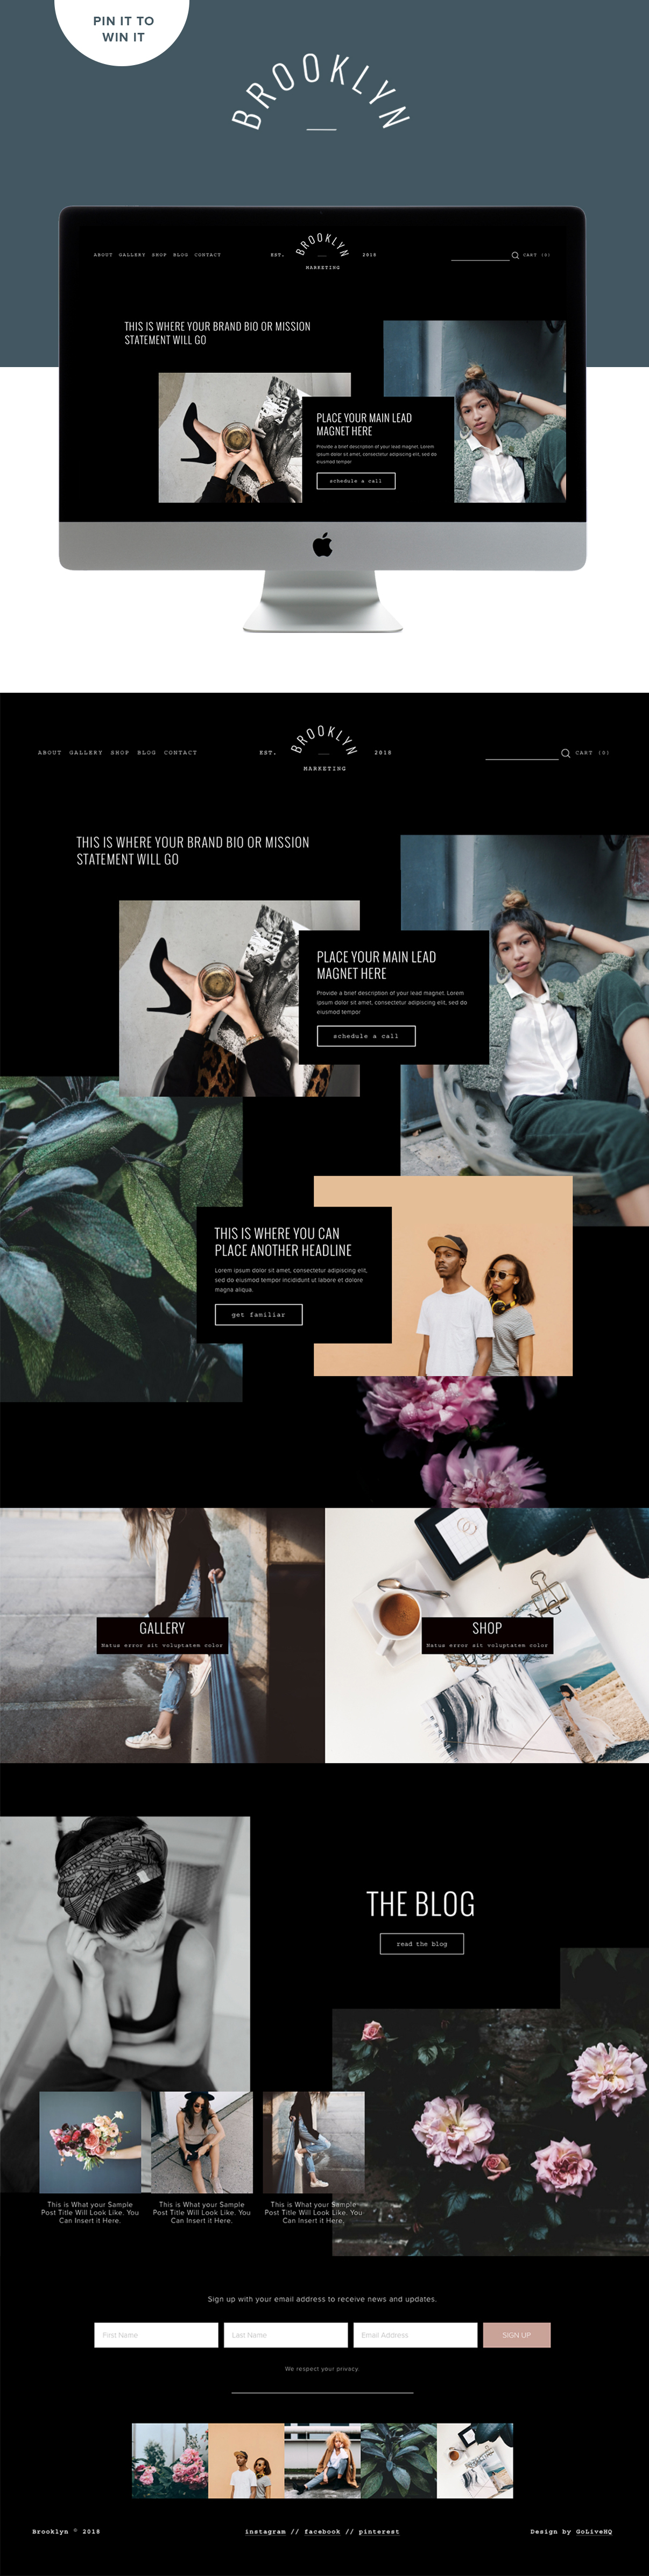 Edgy modern dark website template for Squarespace by Go Live HQ